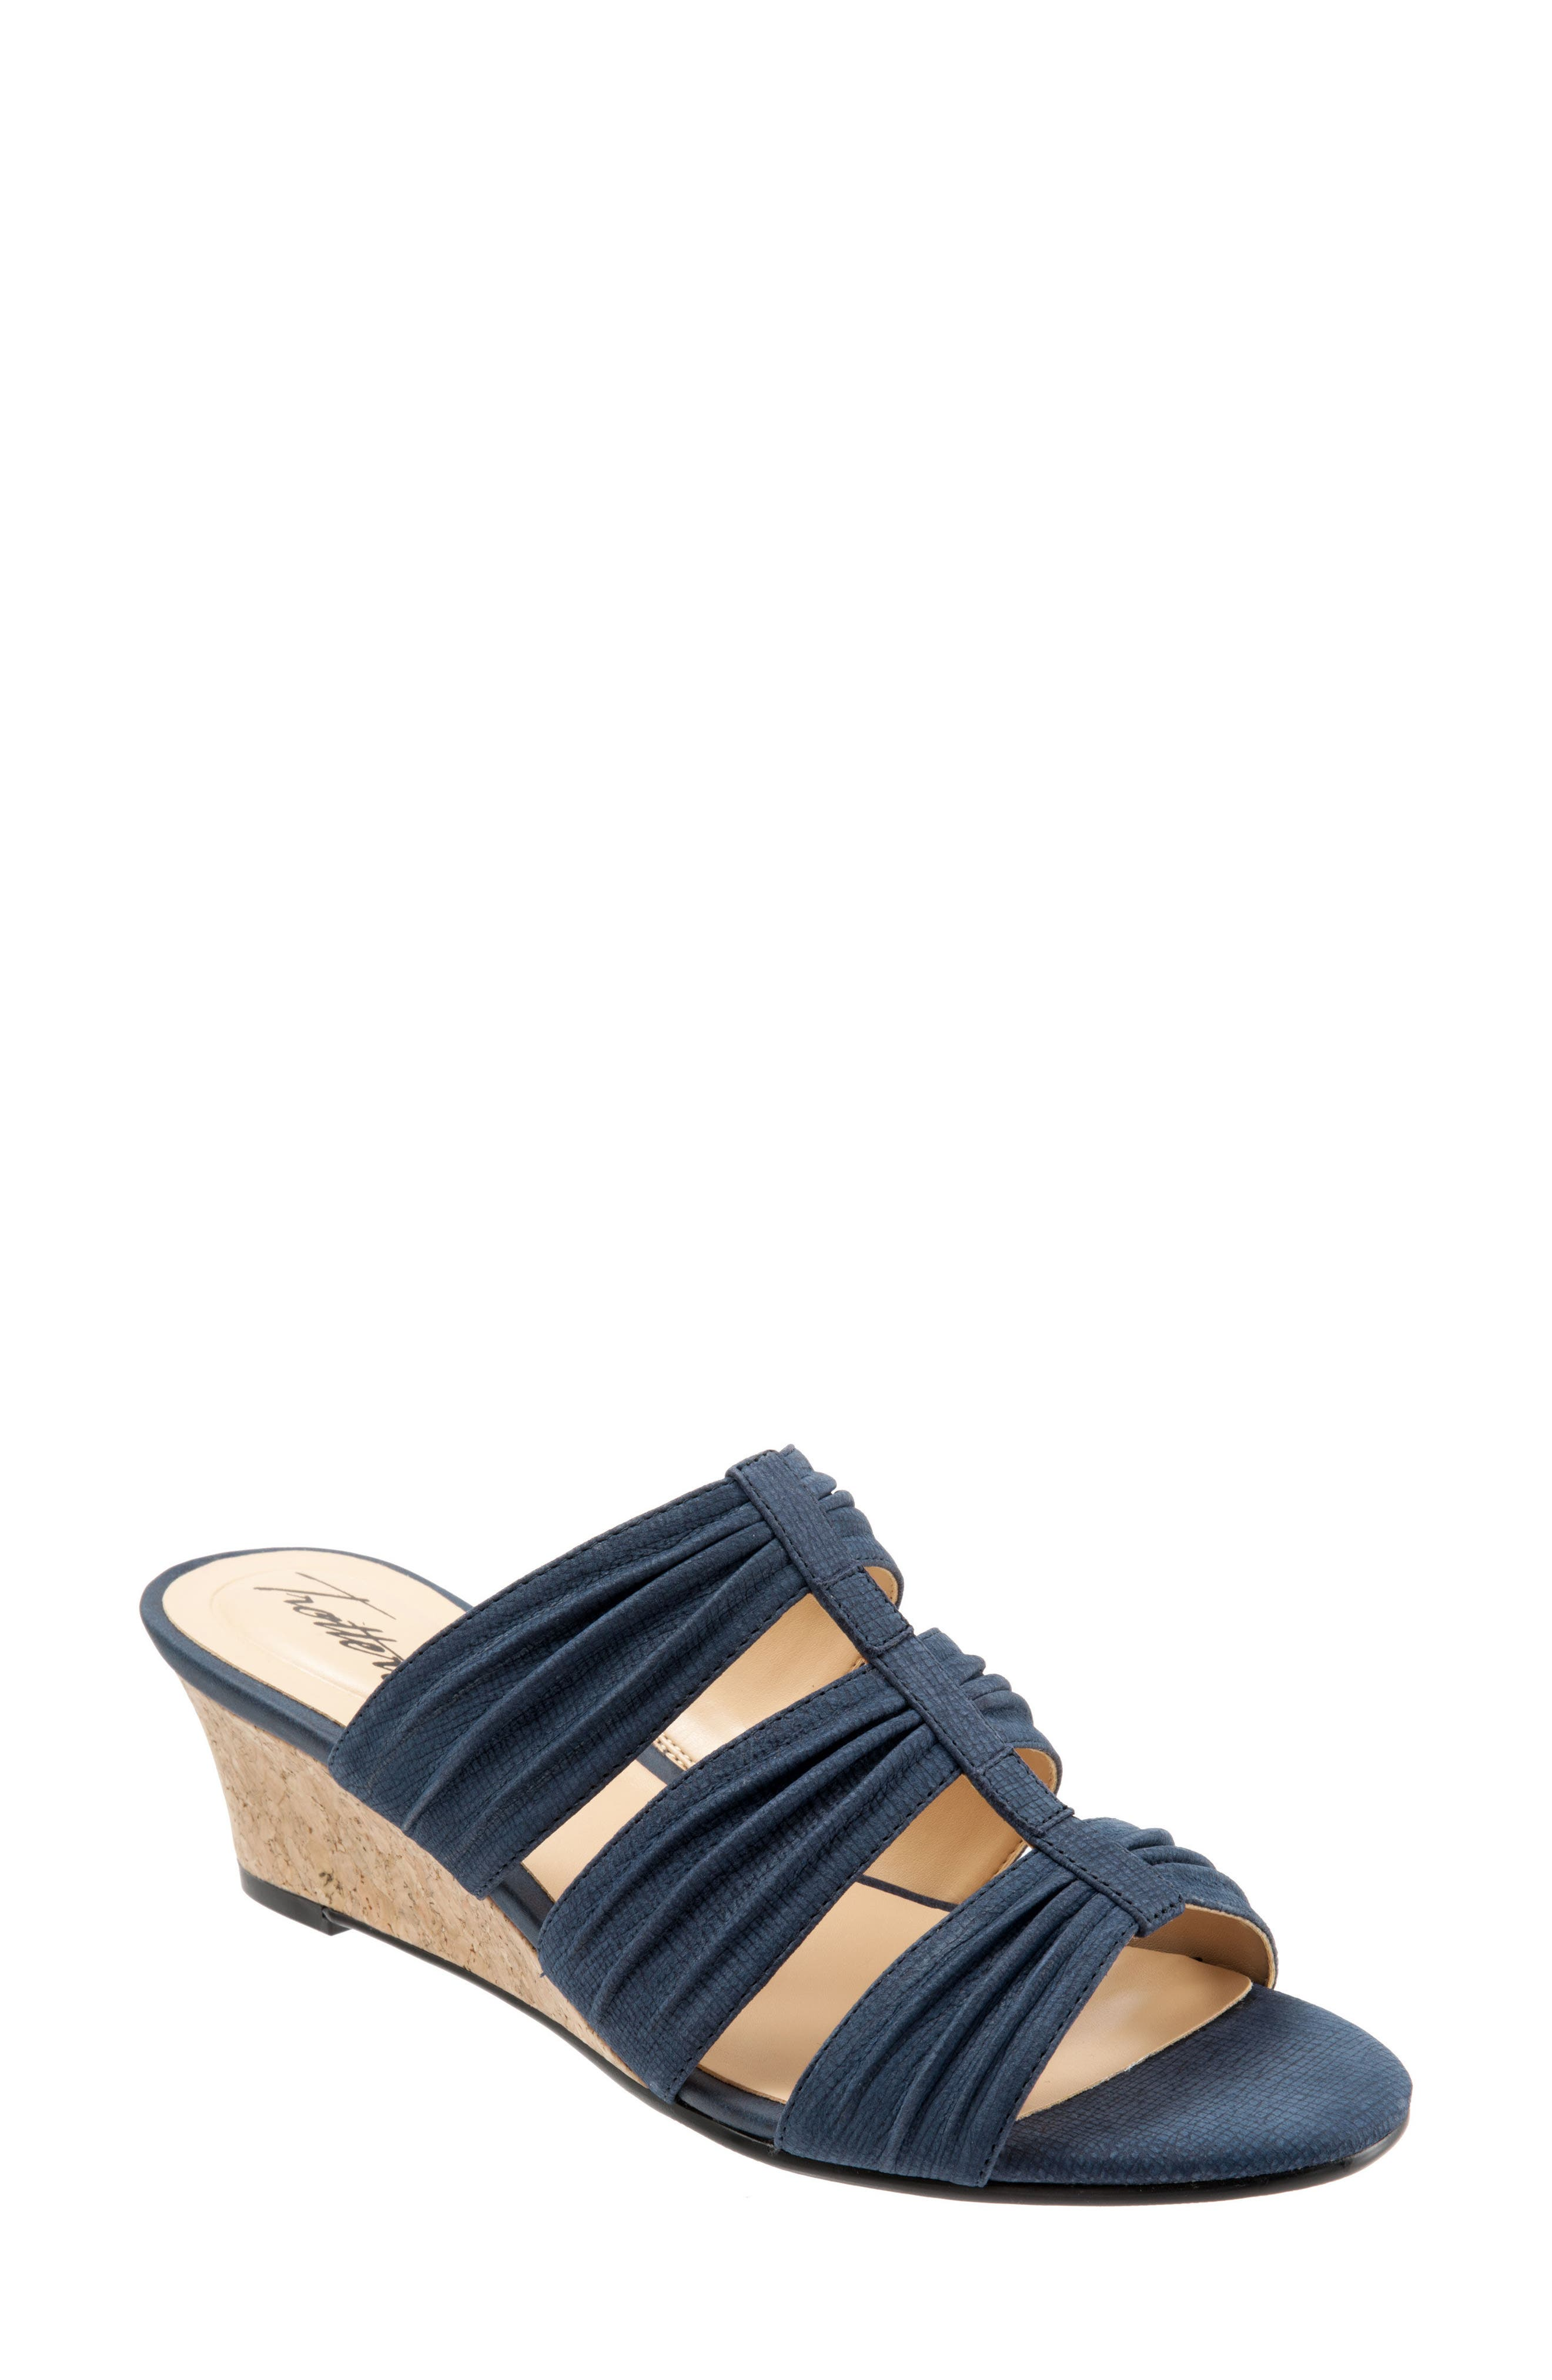 Main Image - Trotters Mia Wedge Sandal (Women)